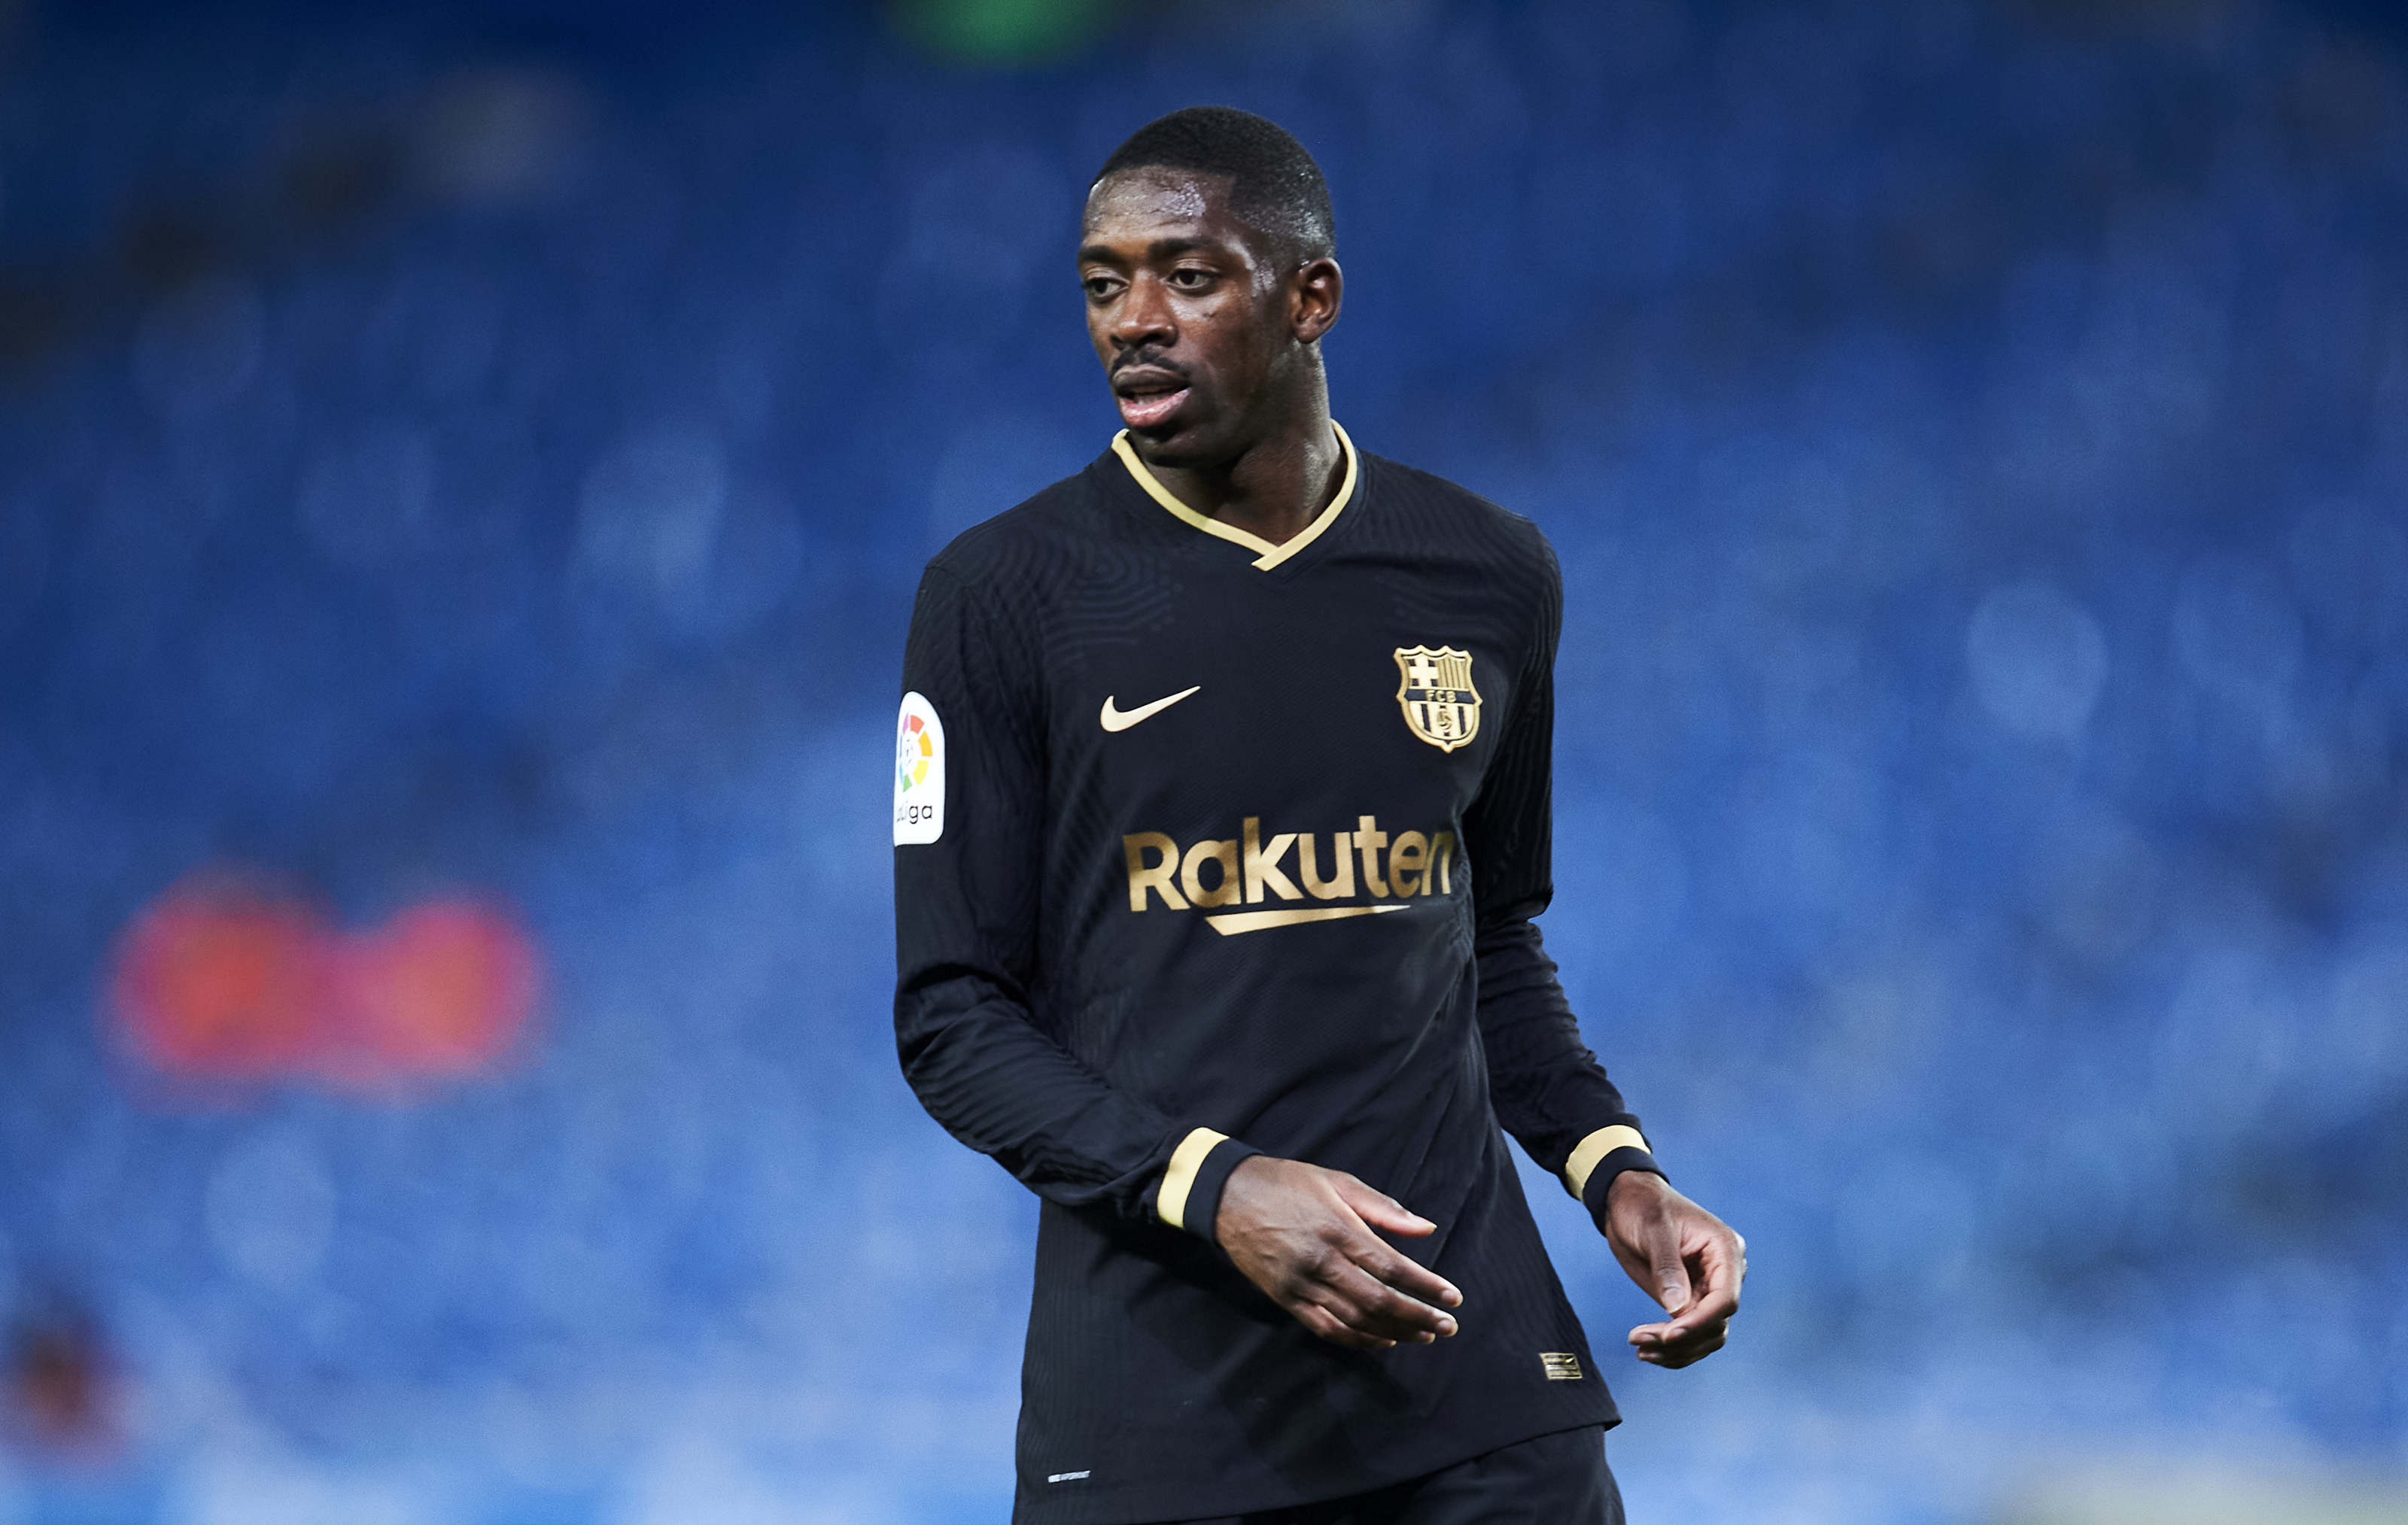 Barcelona eyeing Ousmane Dembele exit after contract standoff